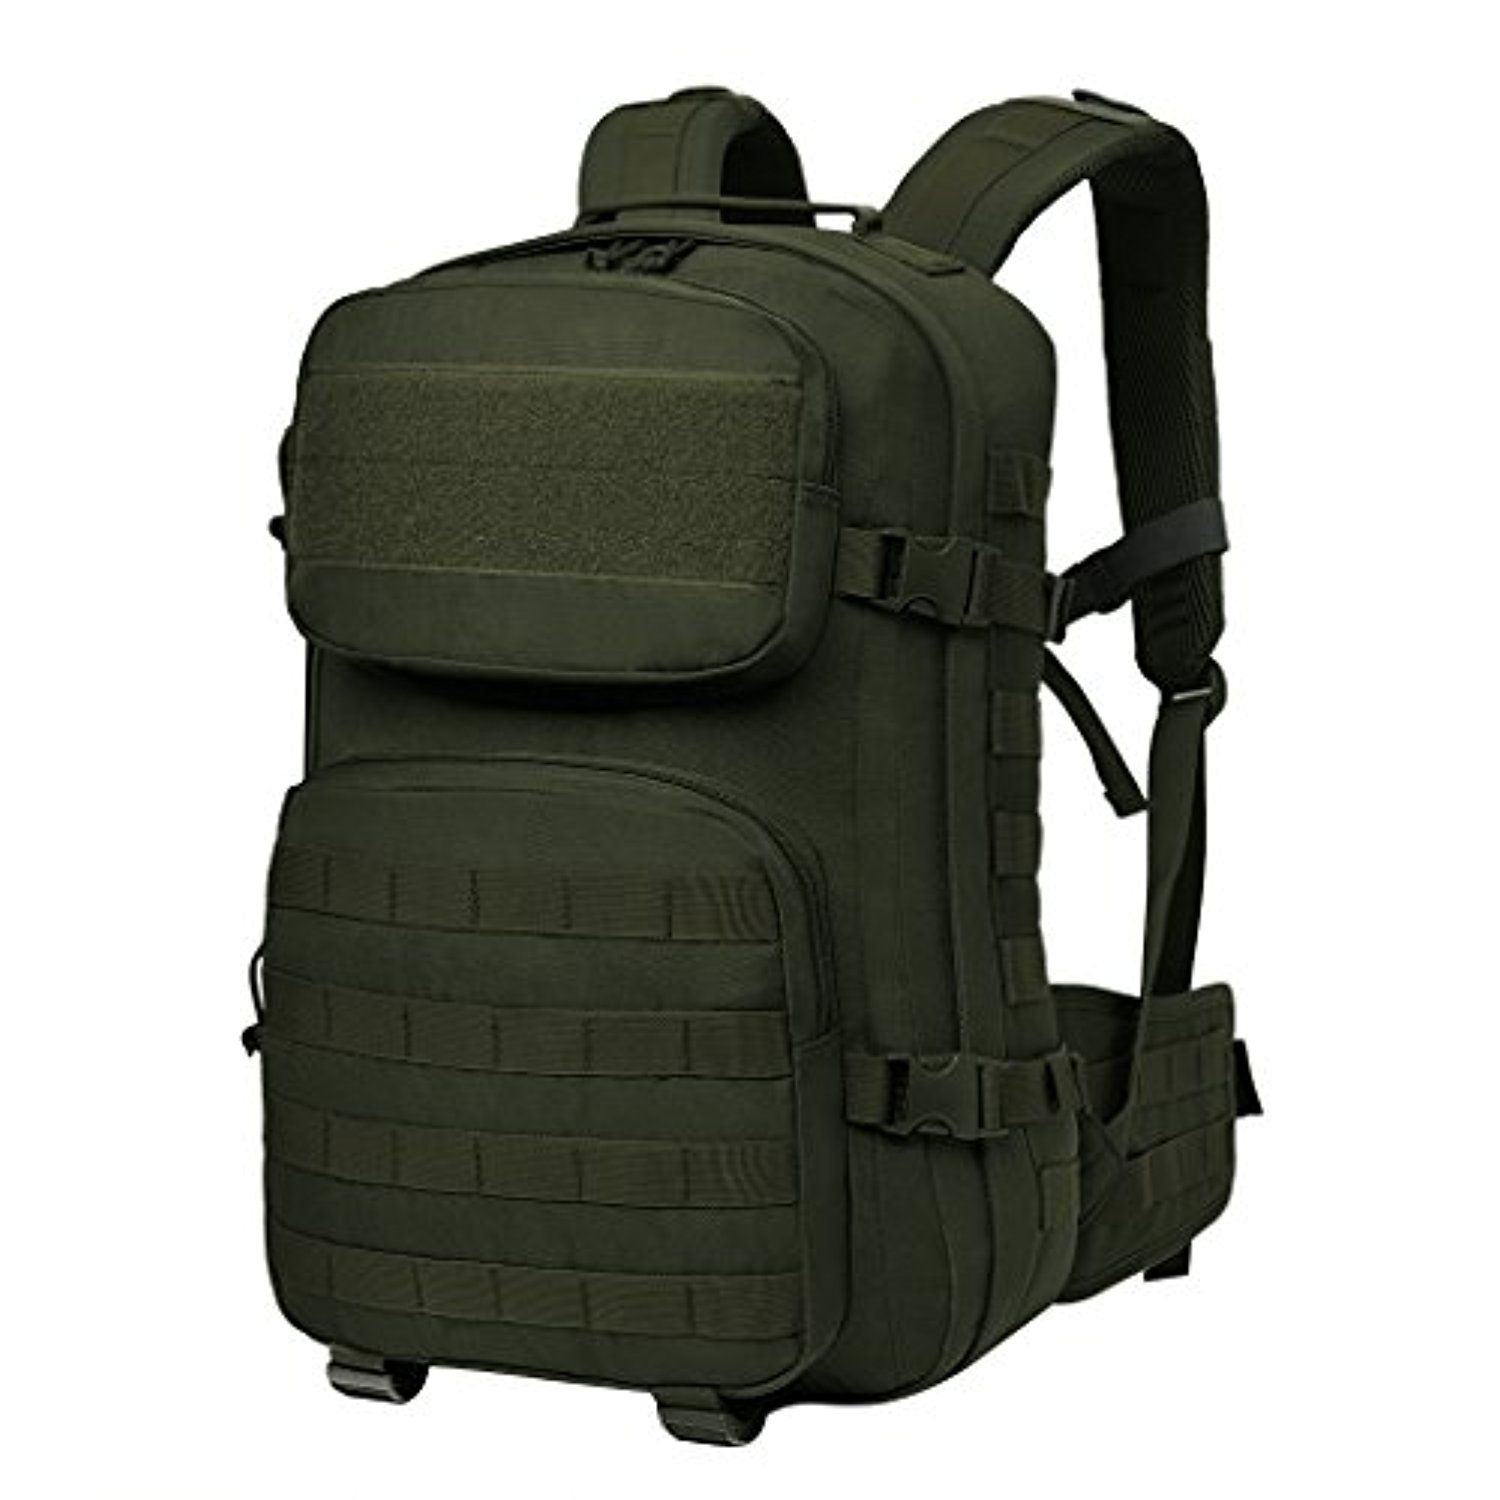 a6996d4fc614 Mardingtop Tactical Backpack/Molle Pack/Military Rucksacks/Military ...